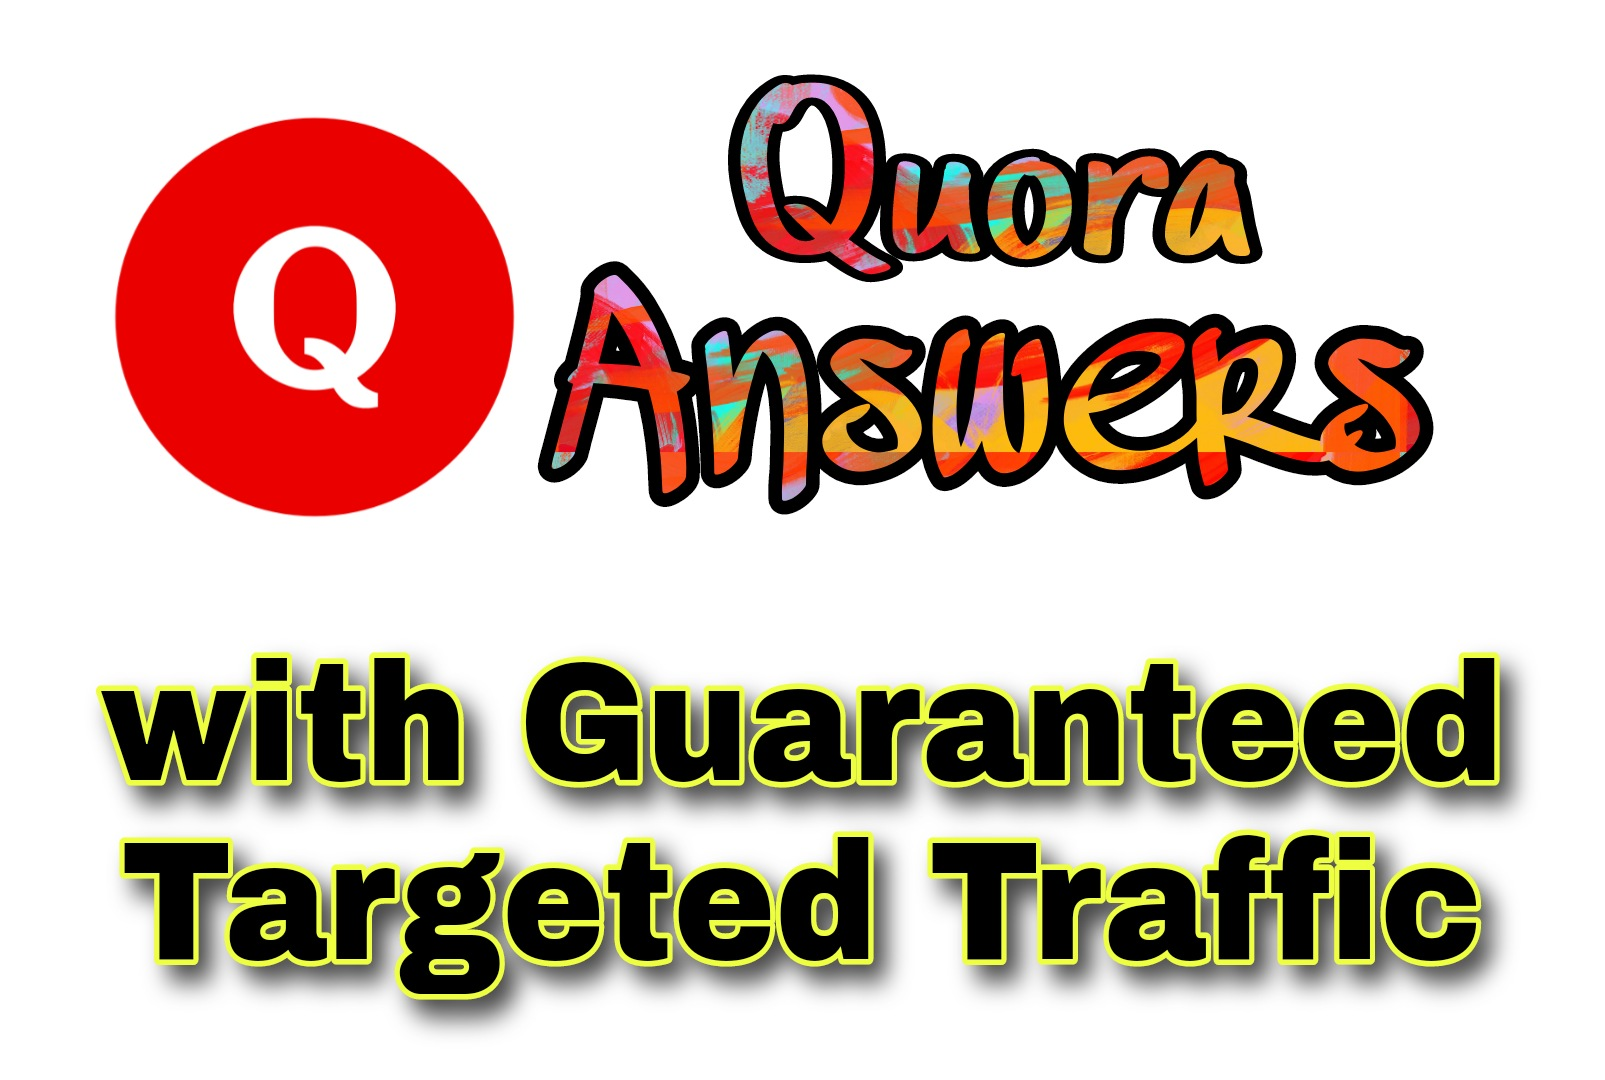 2 Quora Answers with Guaranteed Targeted Traffic